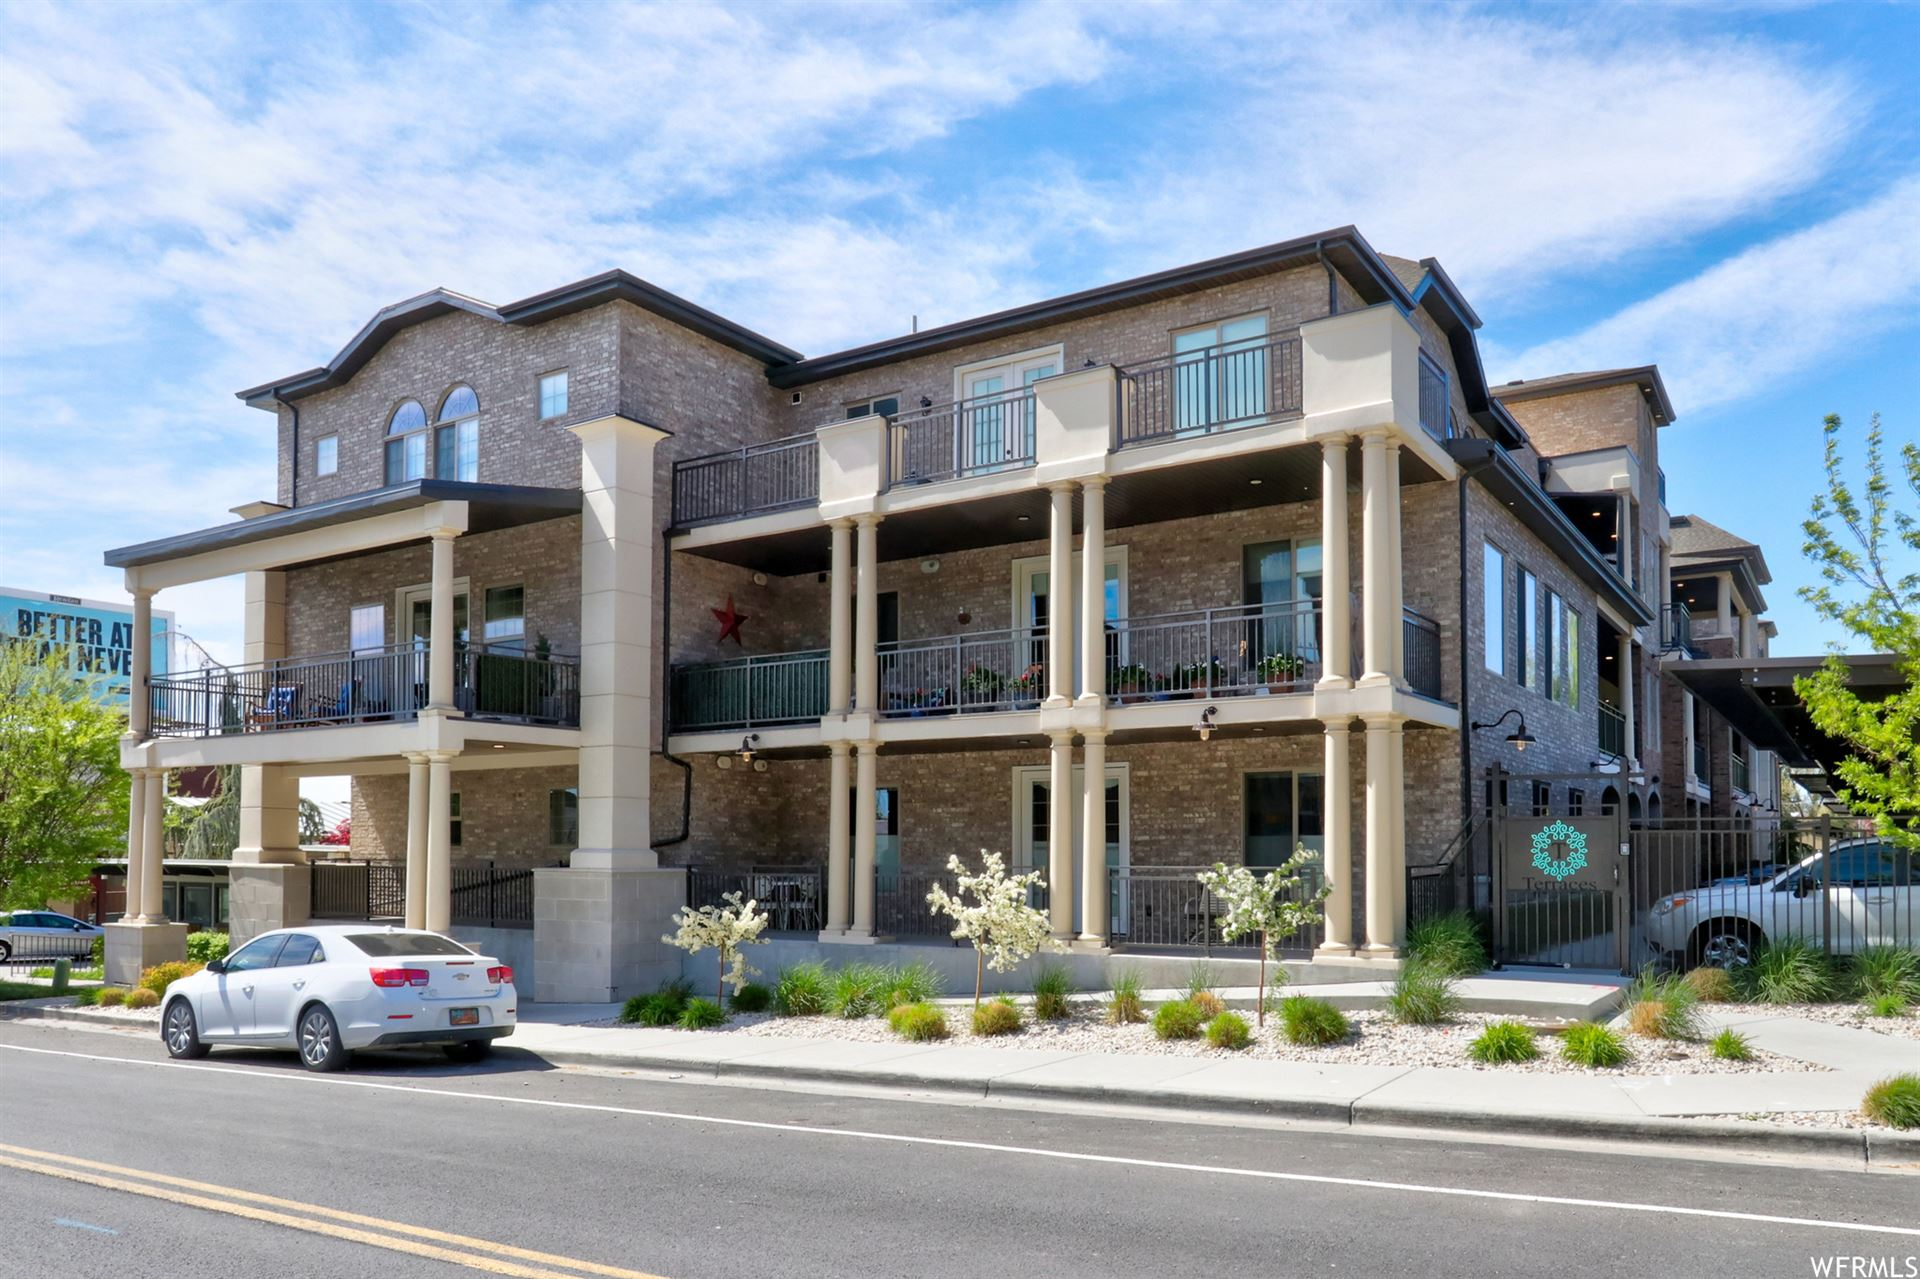 Photo of 2369 E MURRAY HOLLADAY S RD #101, Holladay, UT 84117 (MLS # 1740452)